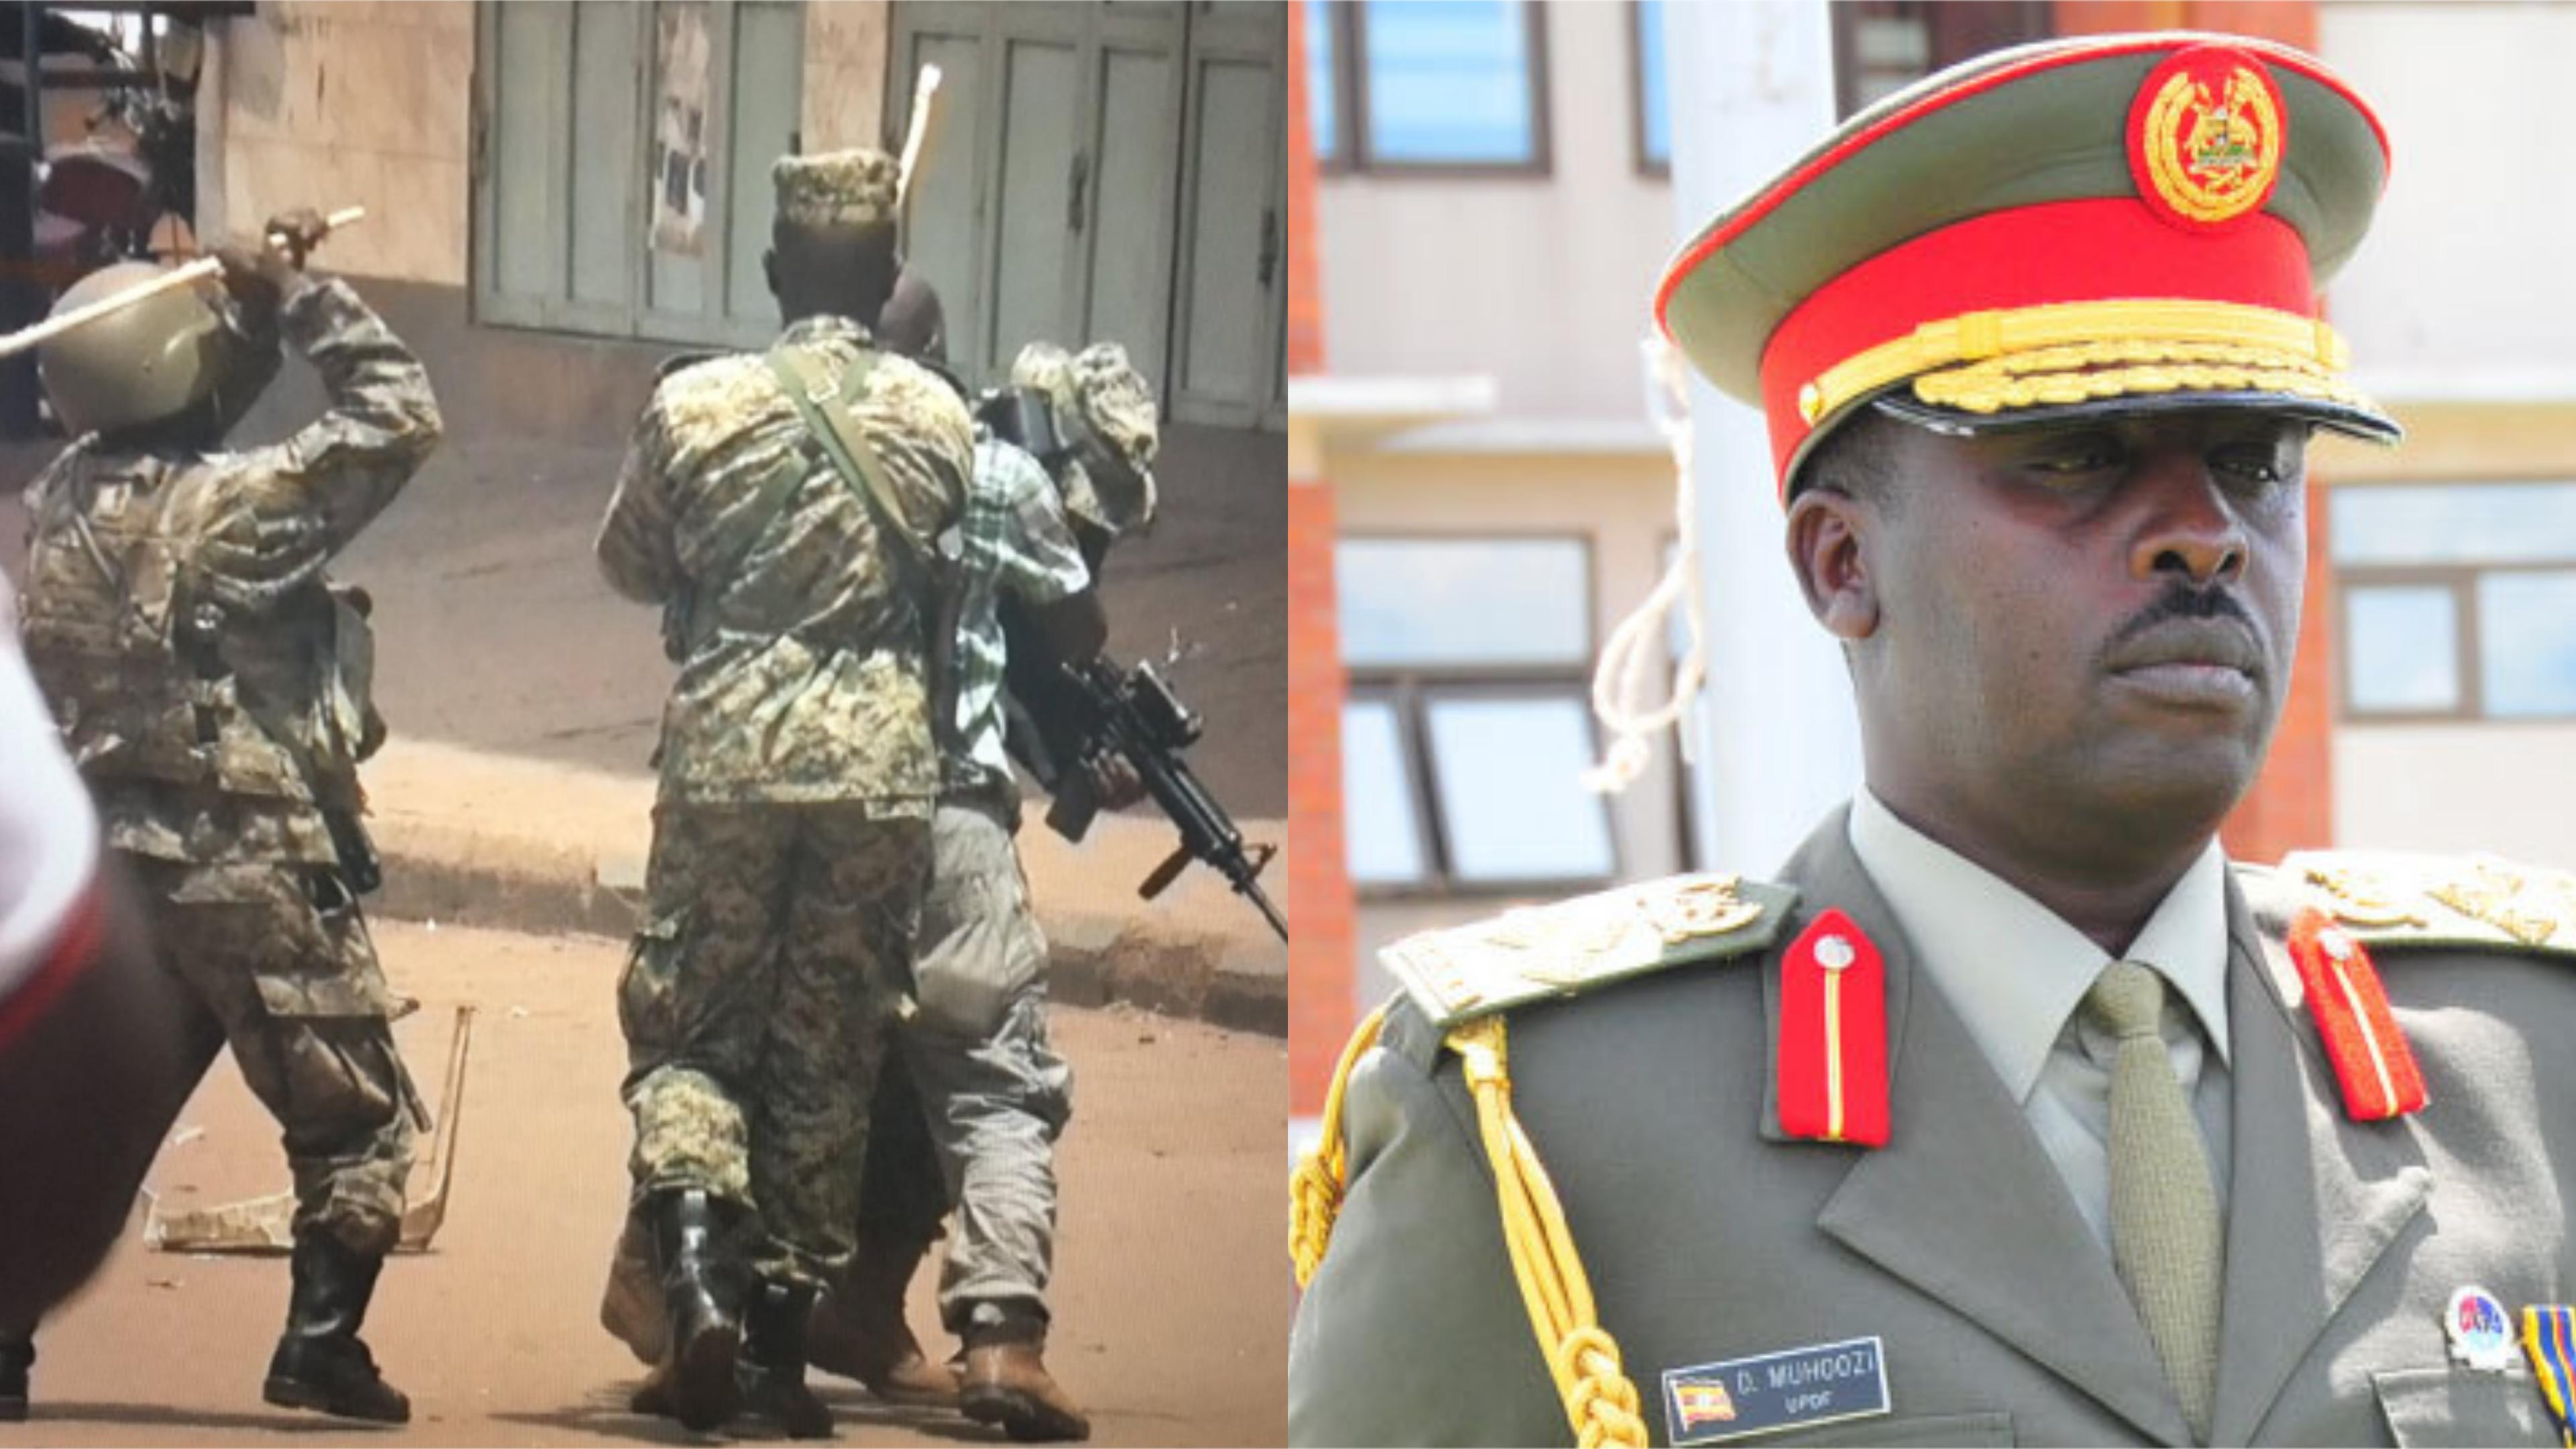 CDF Muhoozi David has ordered the immediate arrest of security officers involved in the brutal clobber of journalists and protesters in the August 20 Bobi Wine protests that had Kampala city on lockdown (FILE PHOTO)